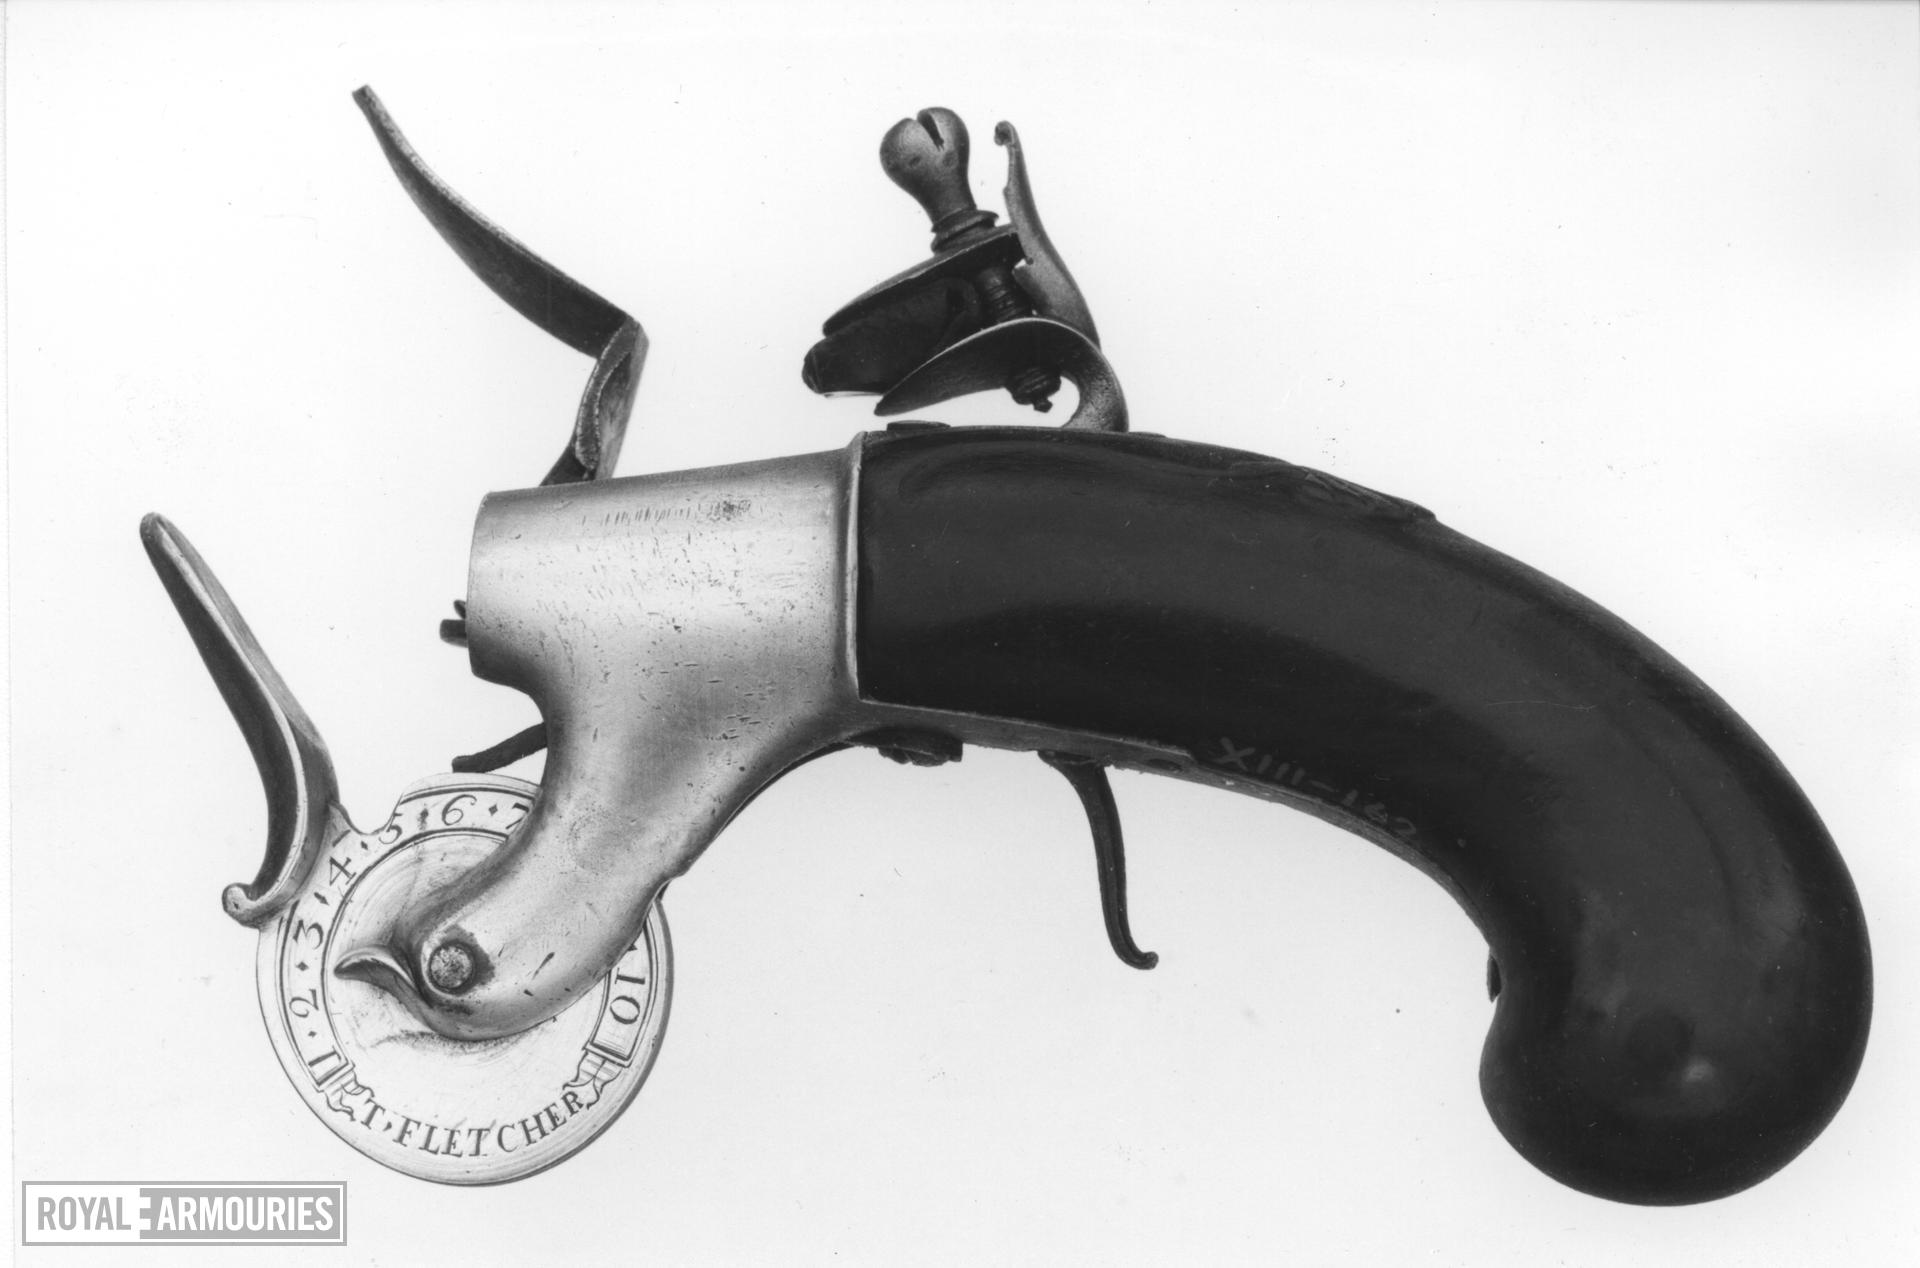 Powder tester By Fletcher of pistol form with flintlock action of box-lock type